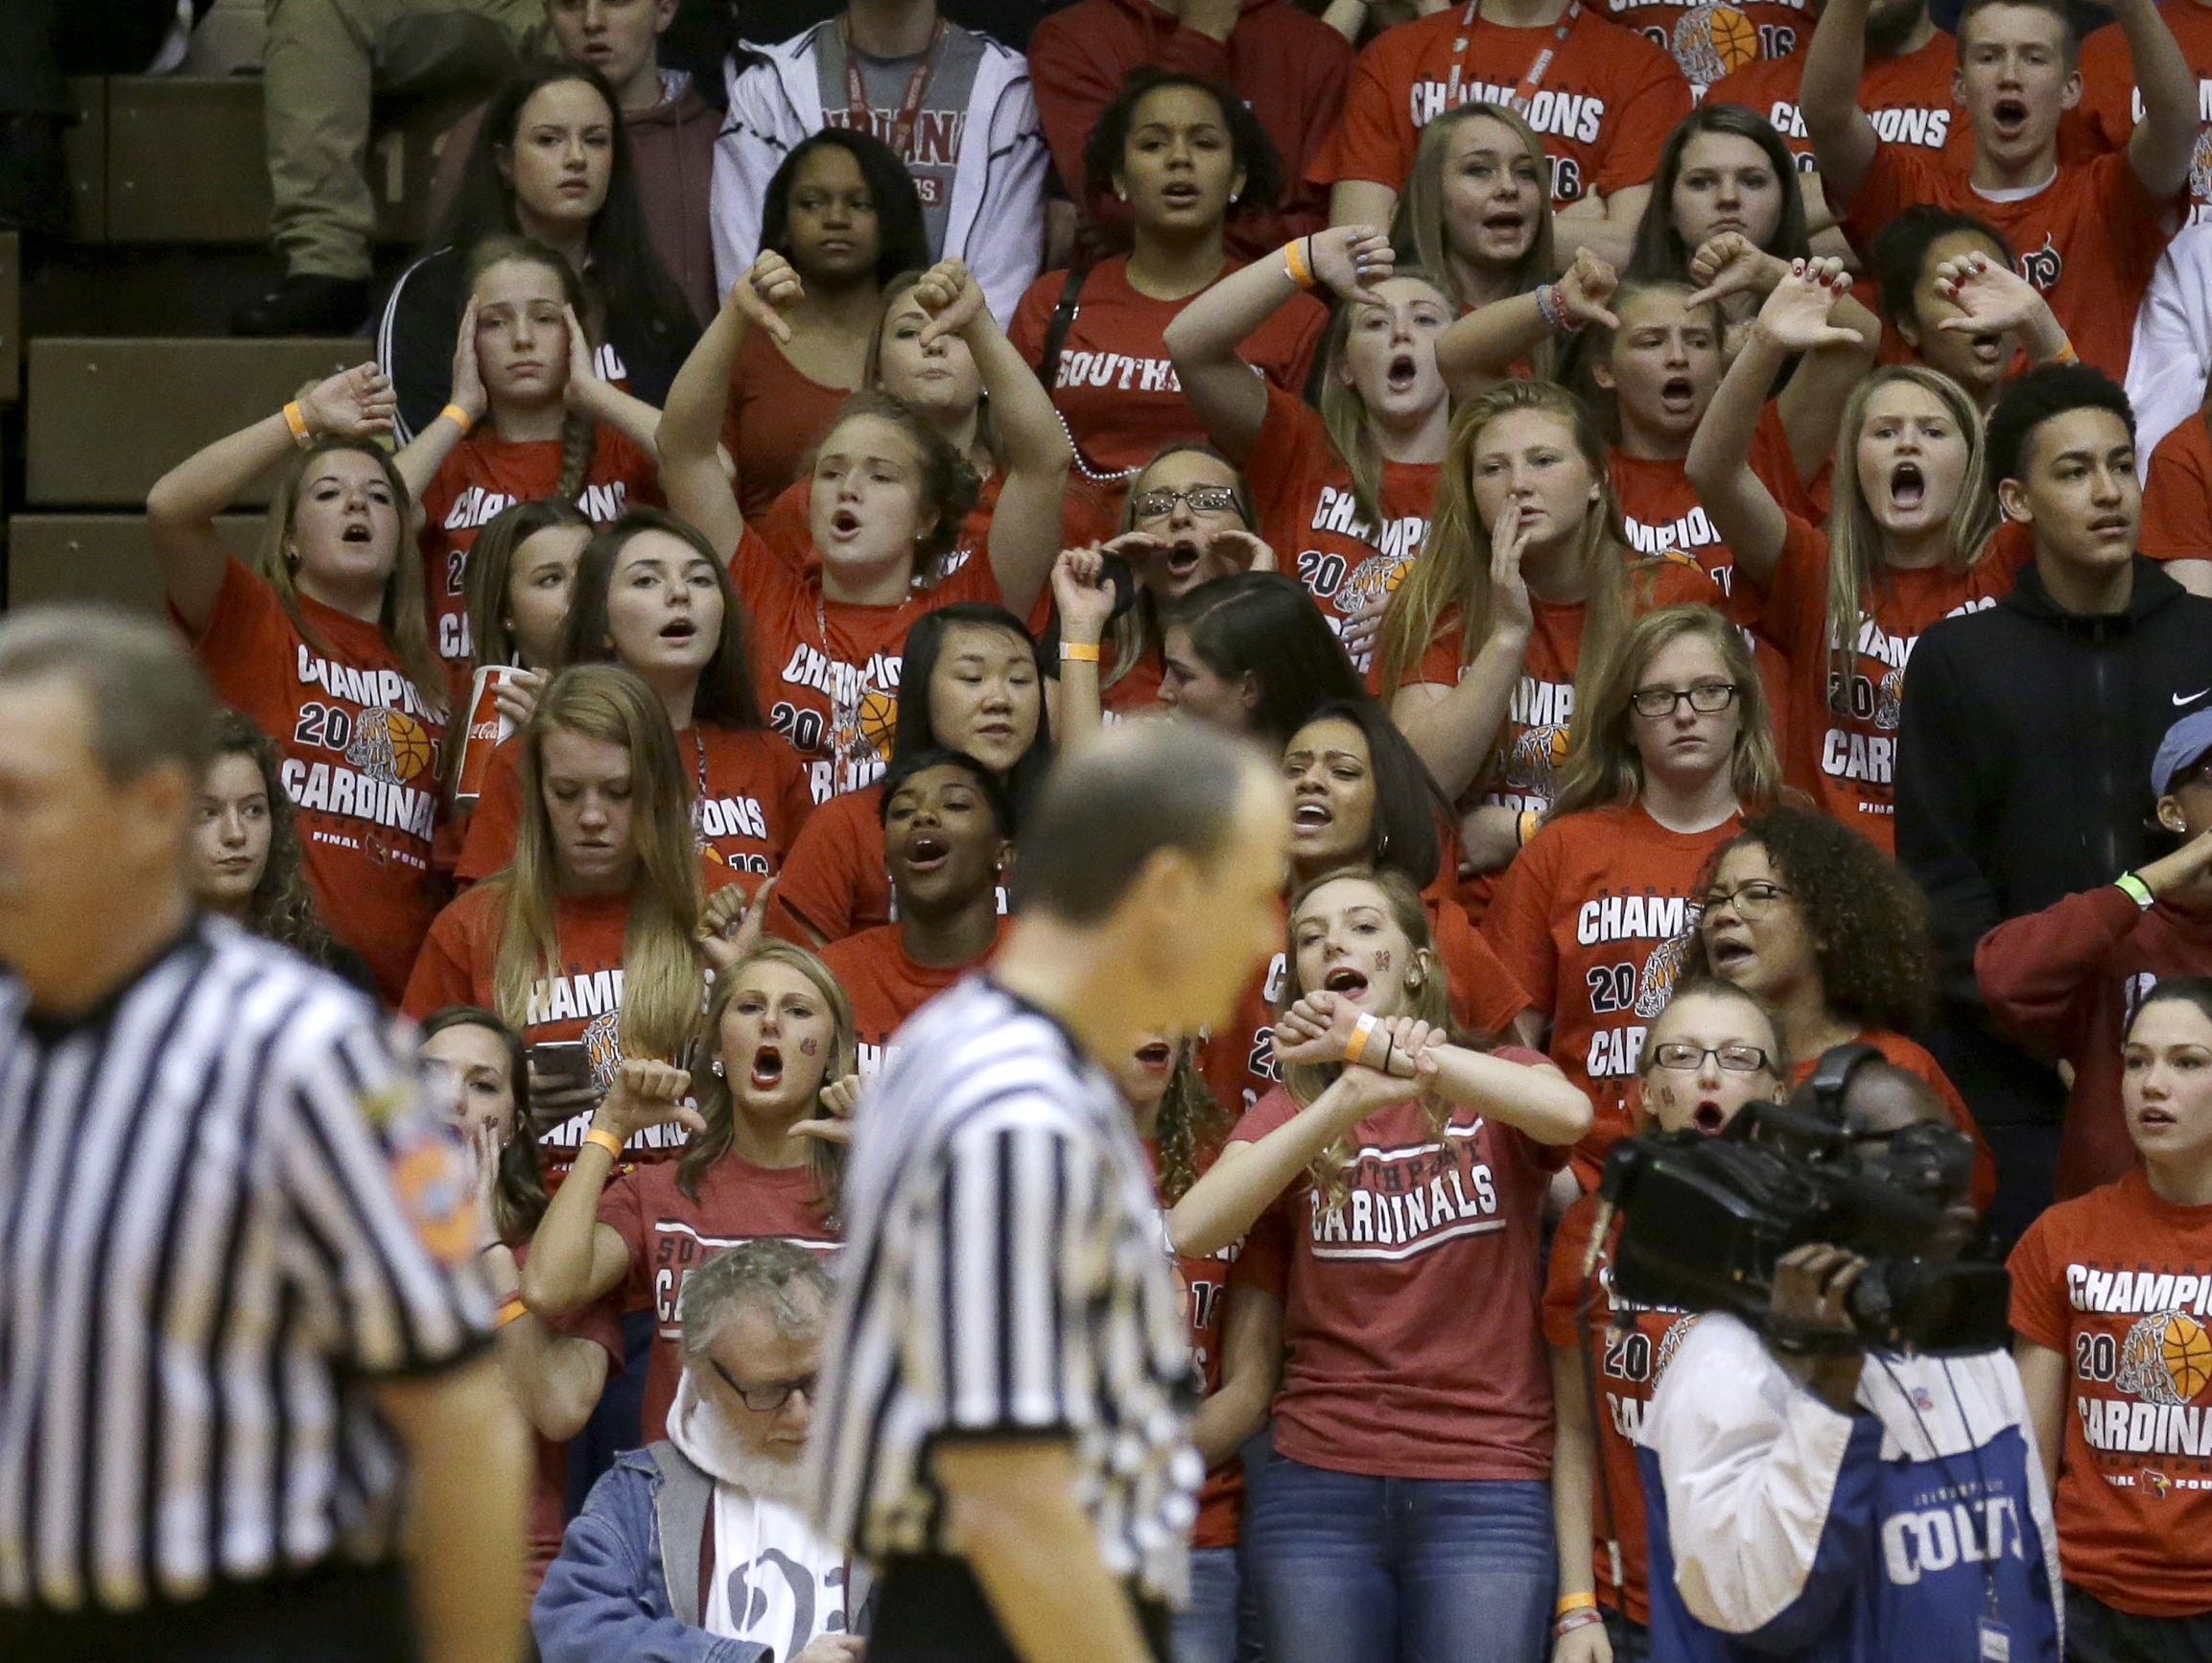 Student fans from Southport give their opinions to the IHSAA officials in the second half of their Class 2A semistate March 19, 2016, at Richmond High School. More and more now days basketball referees and officials are getting harassed by fans, students and parents.